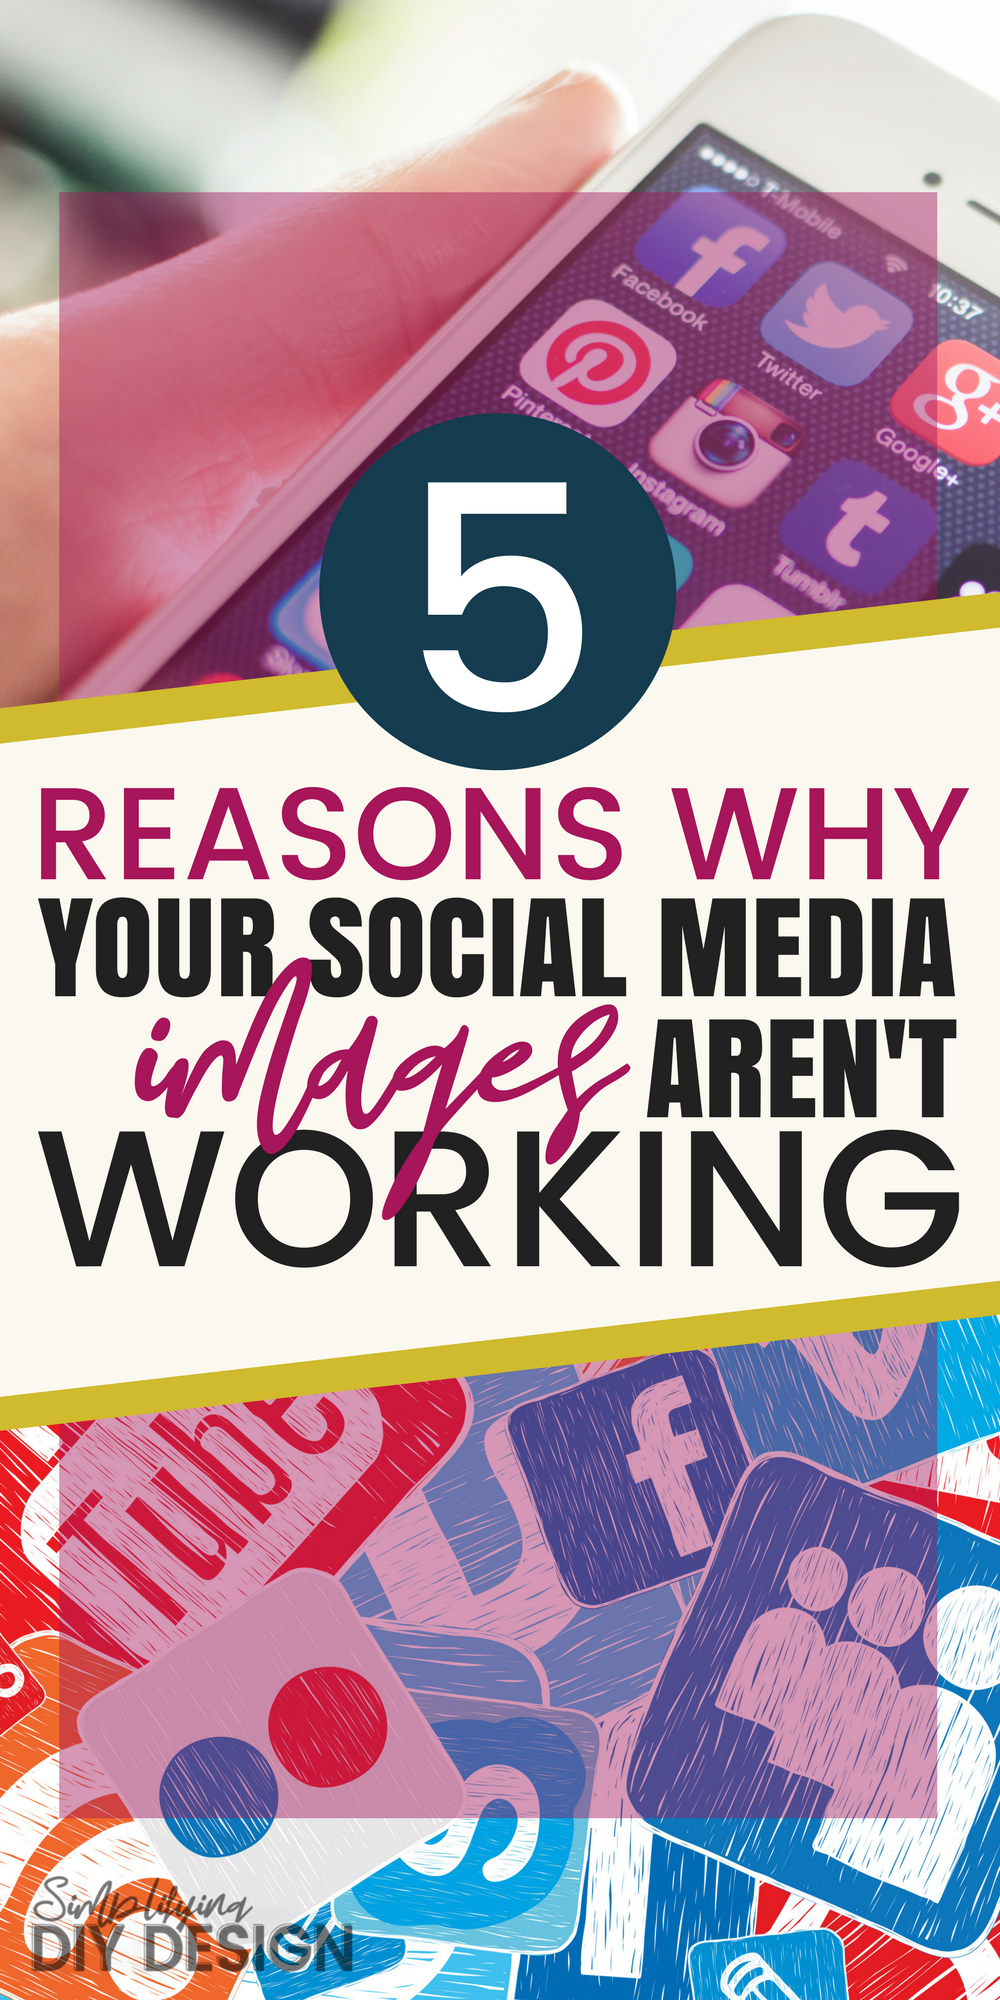 Title of image: 5 Reasons why your social media images aren't working